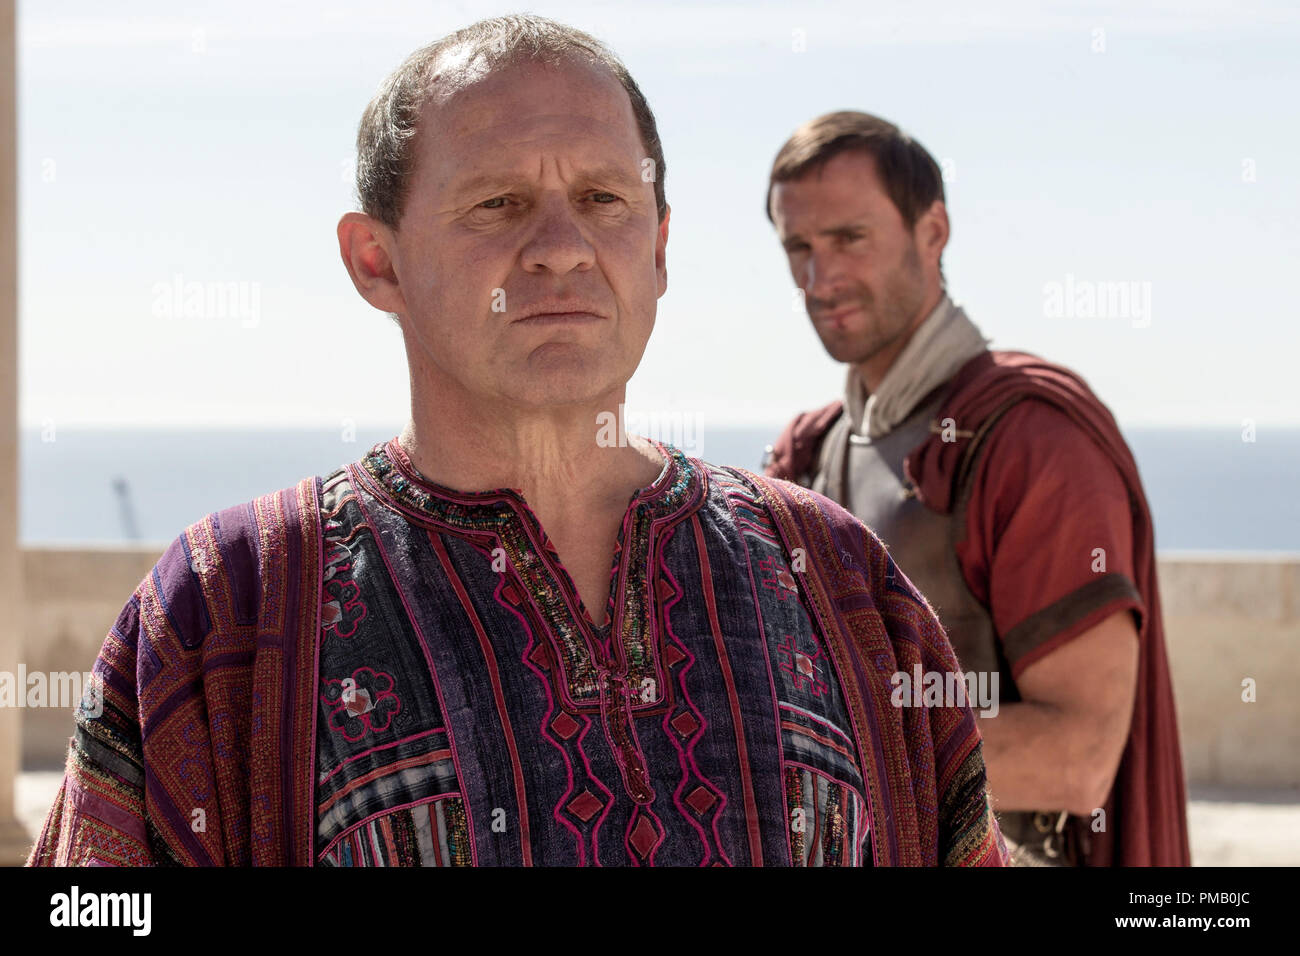 Pontius Pilate (Peter Firth) worries aloud that the prophecy of the Messiah may prove true as his tribune Clavius (Joseph Fiennes) awaits marching orders in Columbia Pictures' RISEN, in theaters nationwide Feb. 19, 2016. - Stock Image